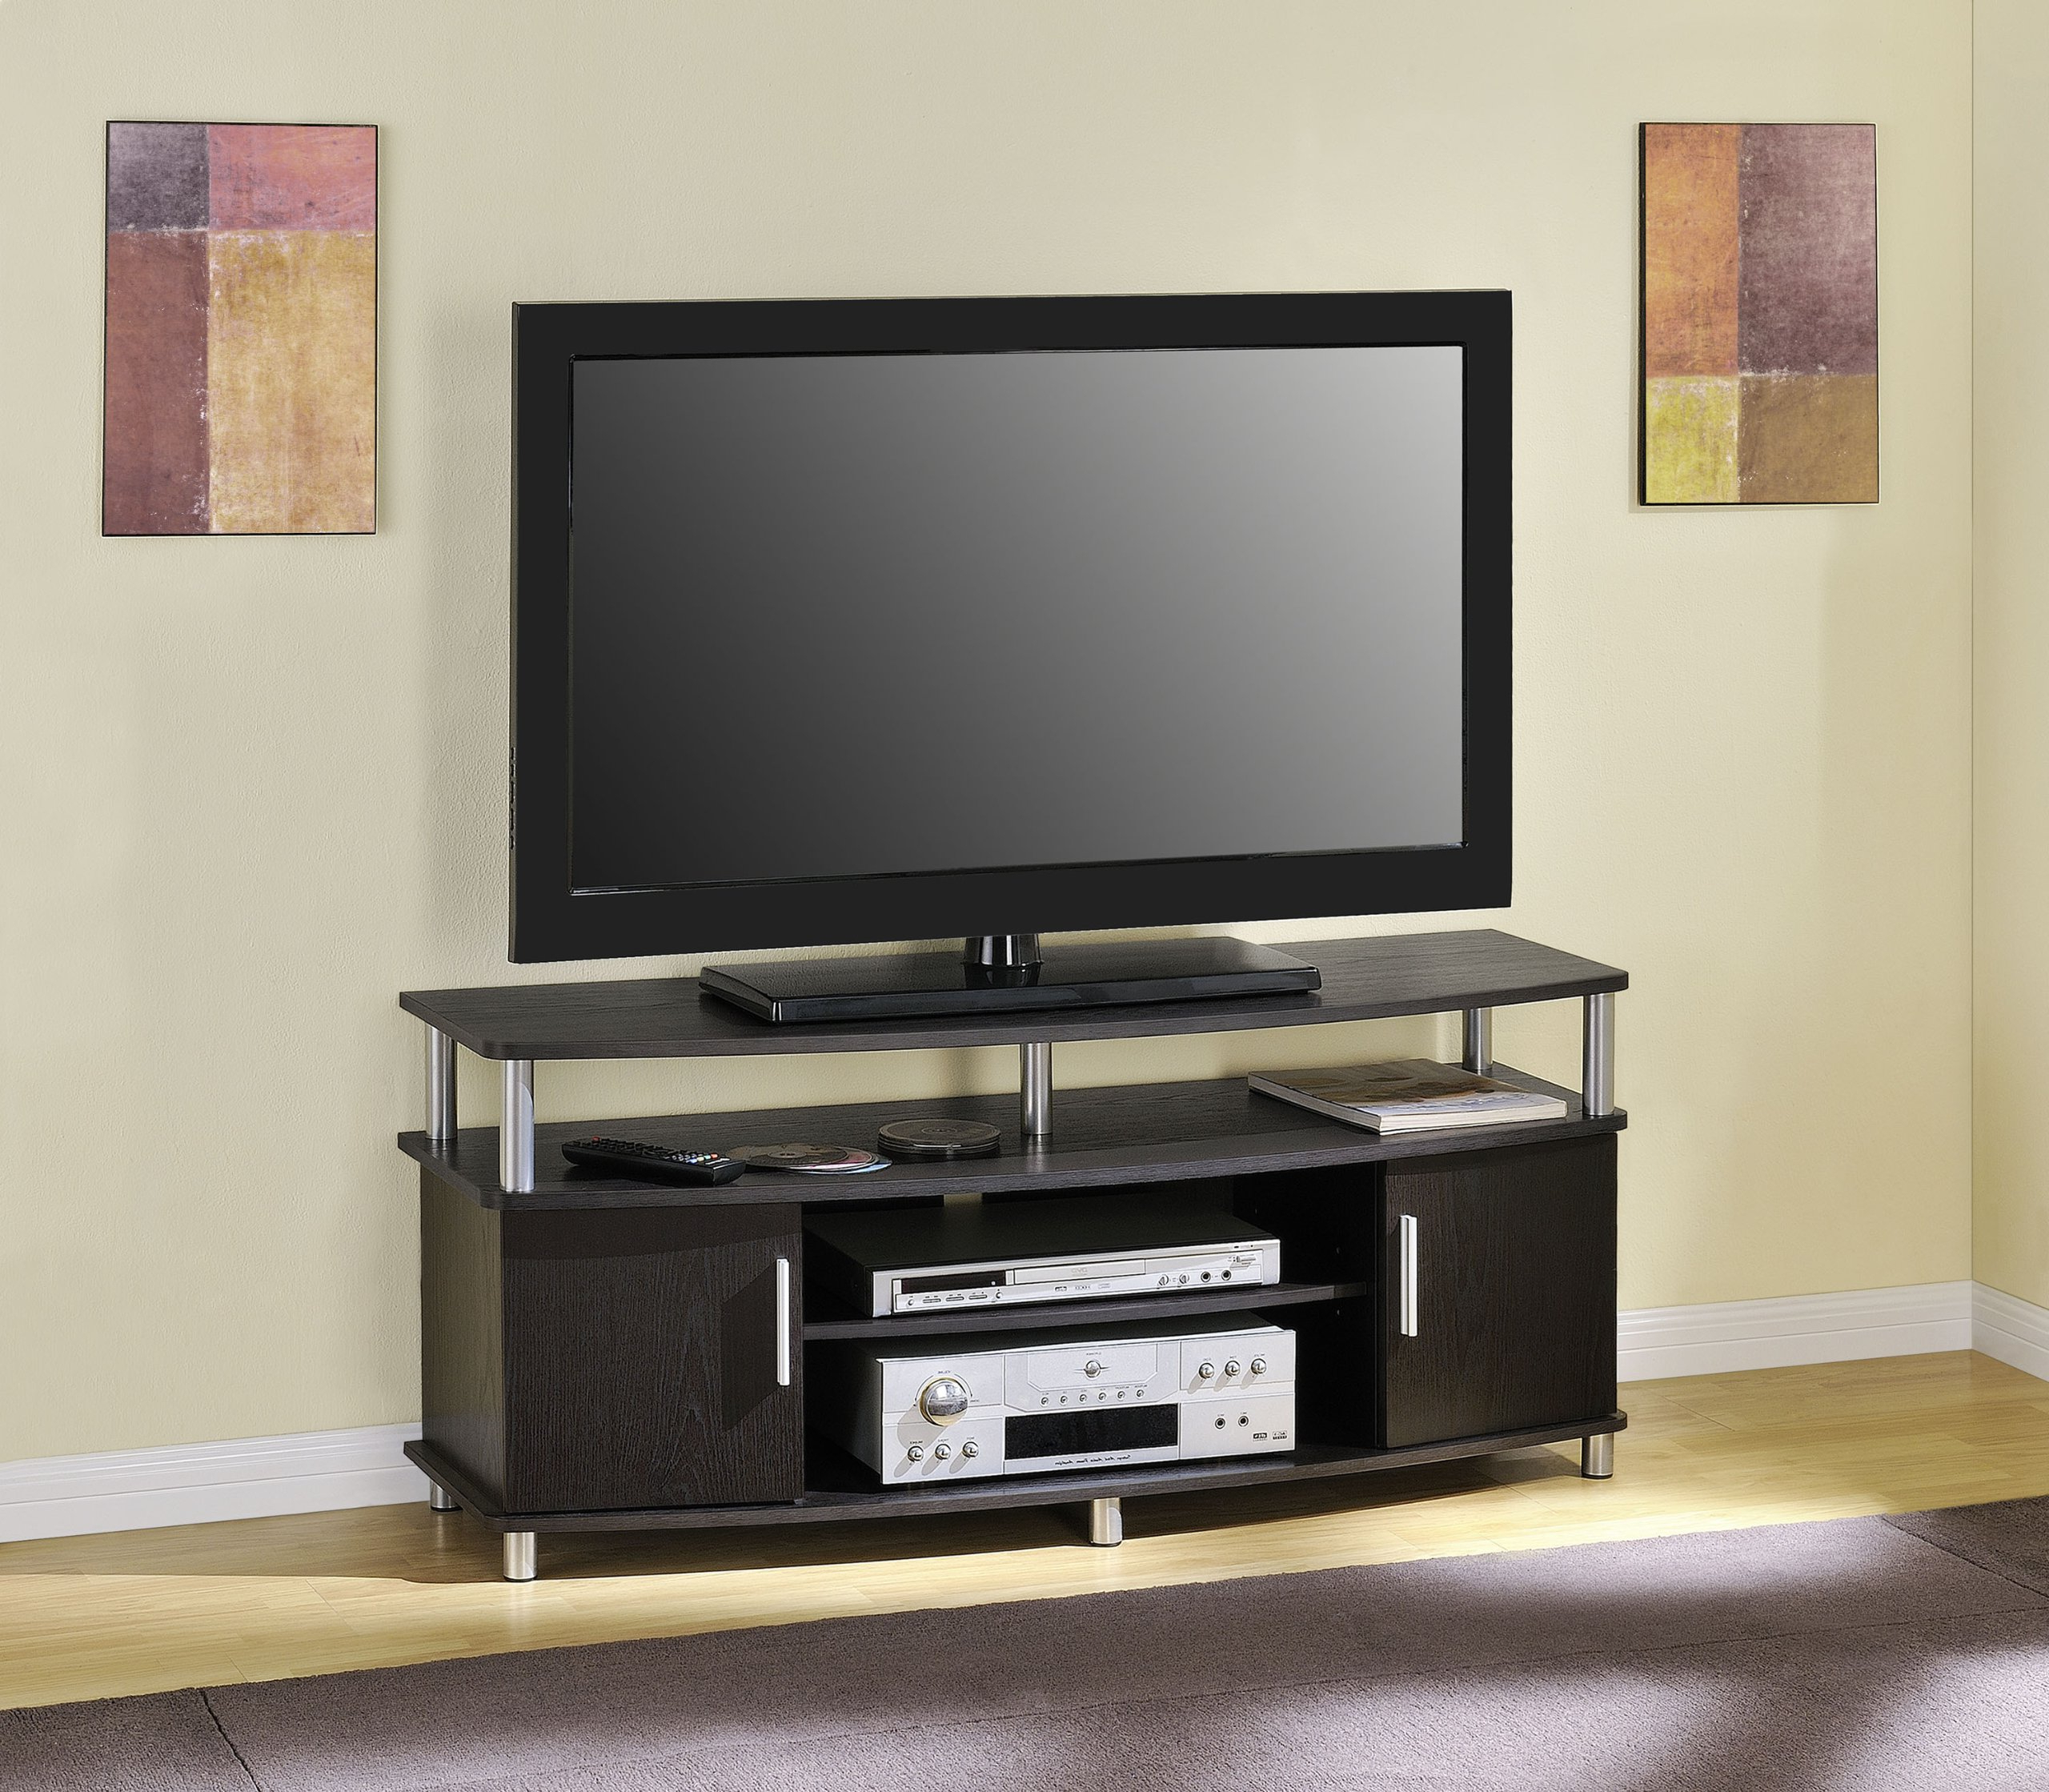 40 Inch Corner Tv Stands Throughout Preferred Best Buy Tv Stands With Mount Stand Walmart Tall Corner Kmart For  (View 6 of 20)